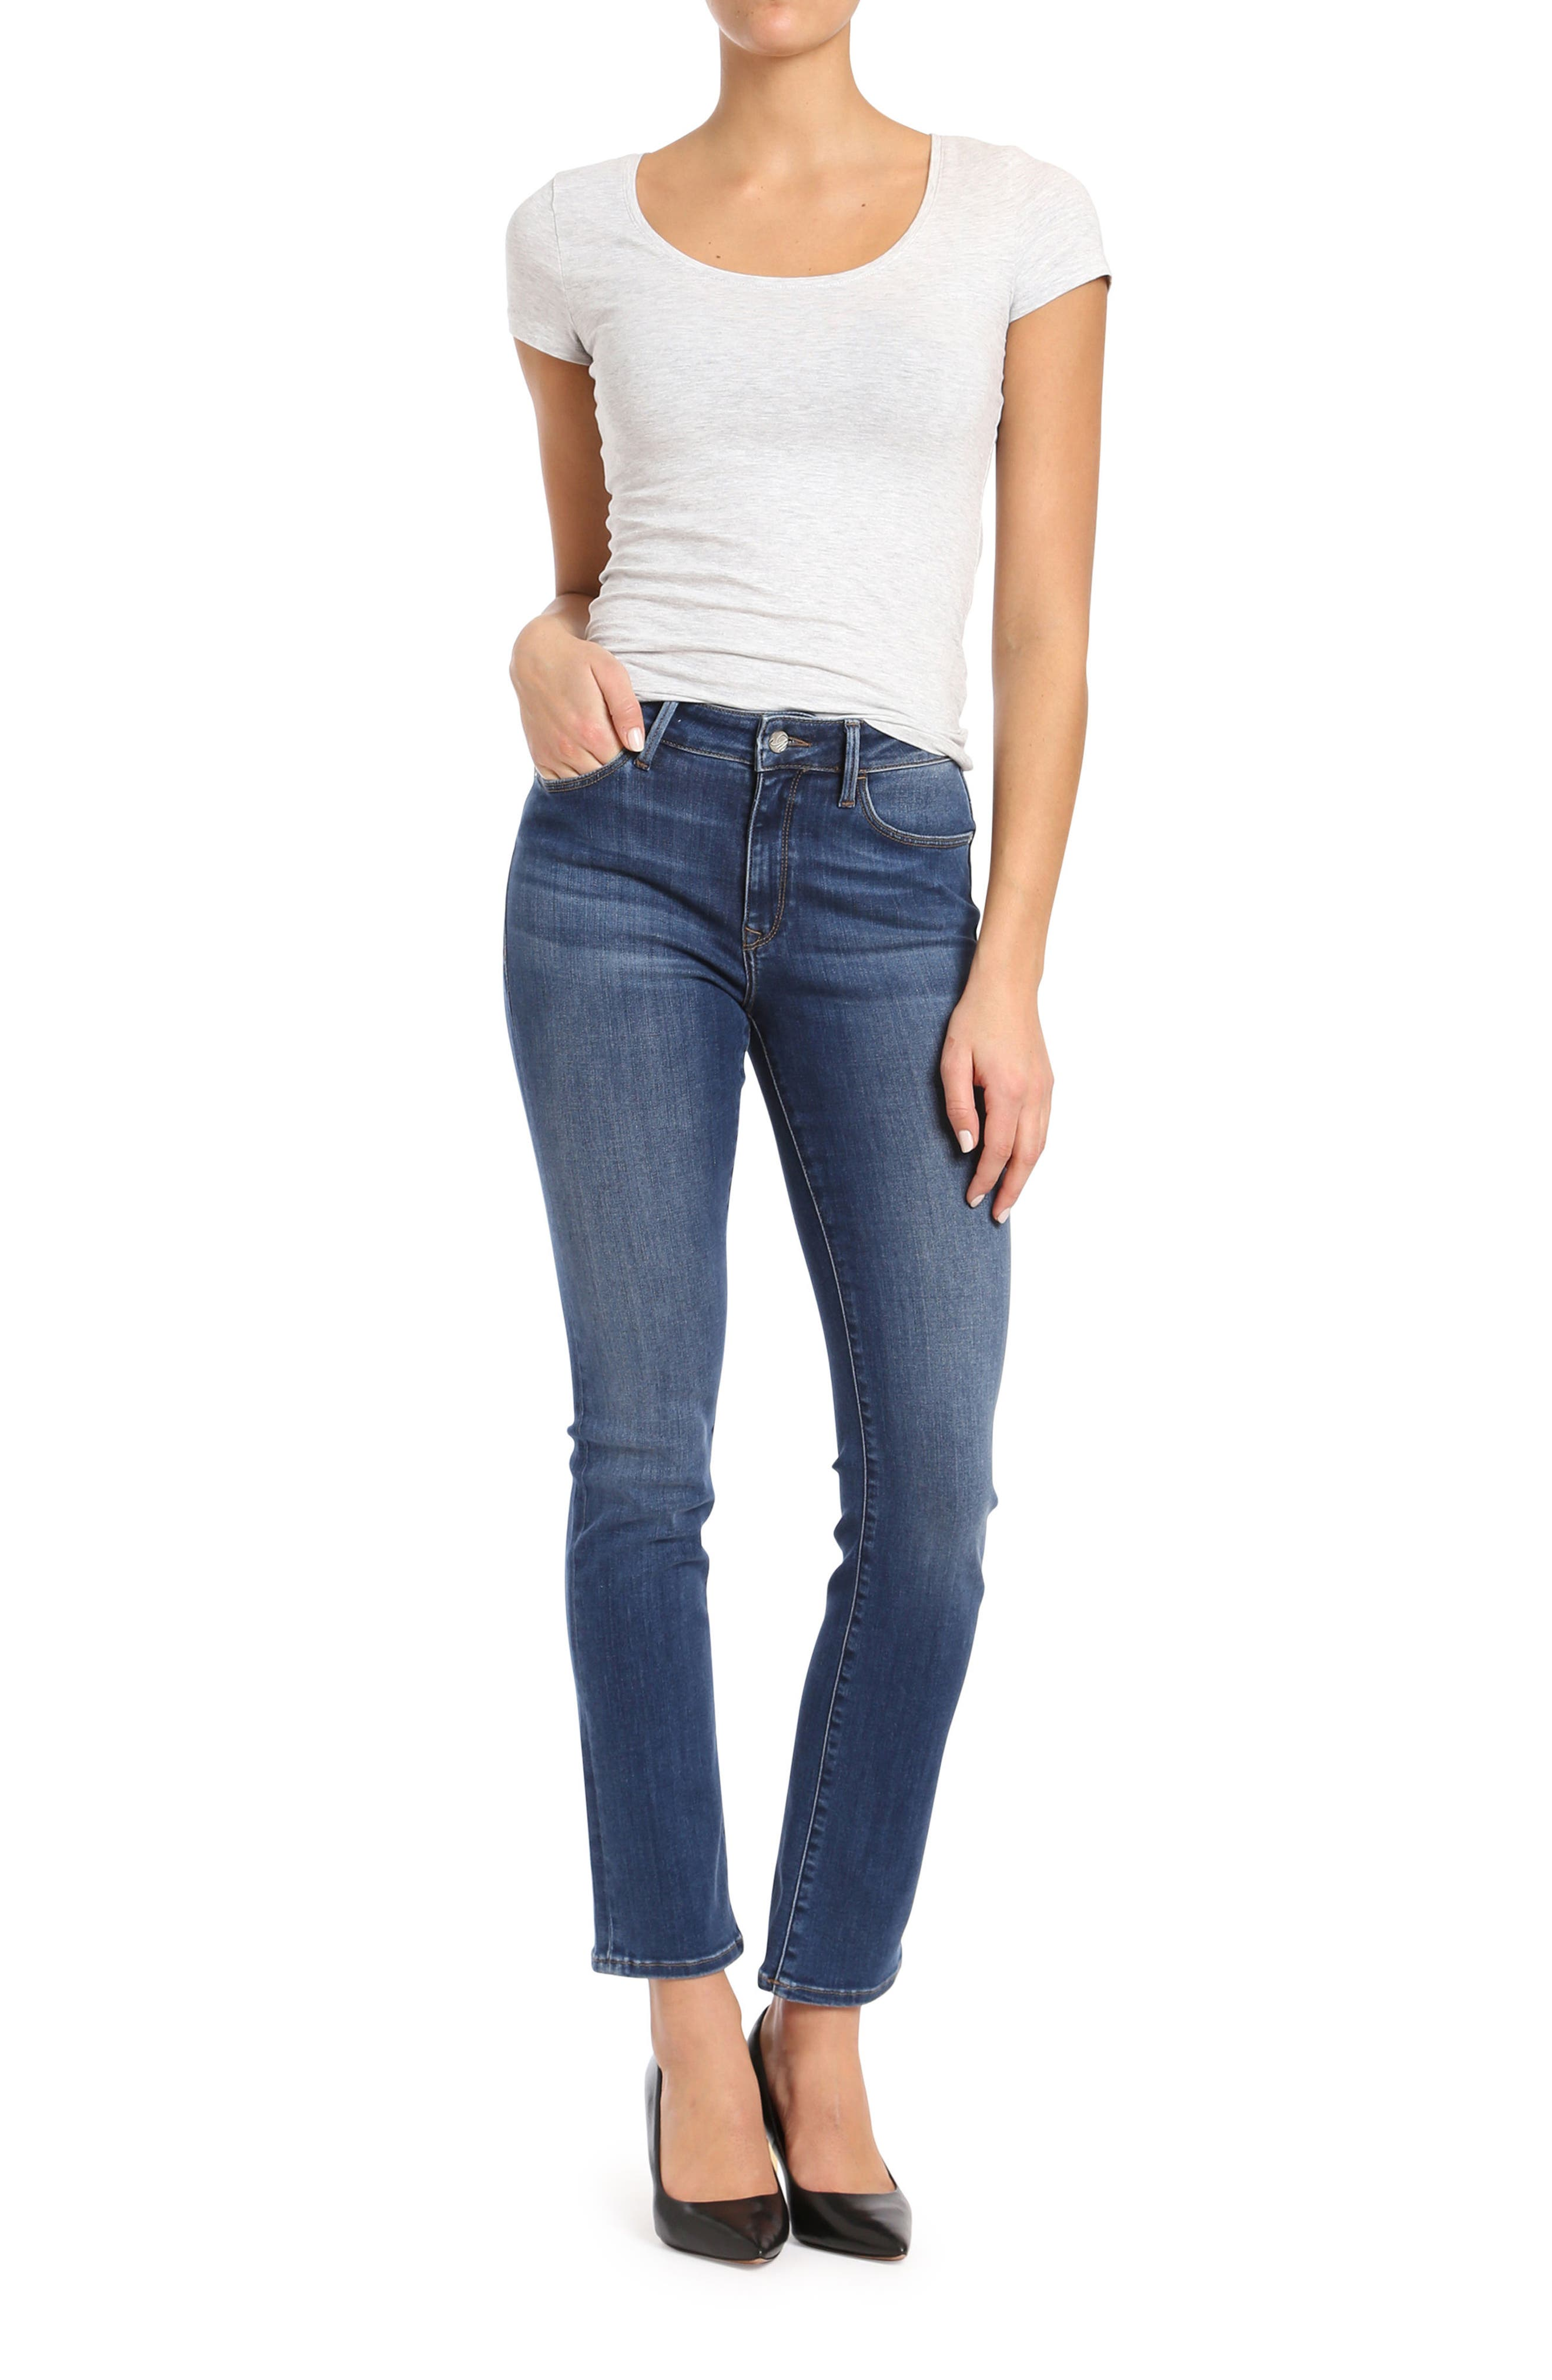 Kendra Straight Leg Jeans,                             Alternate thumbnail 5, color,                             INDIGO SUPER SOFT